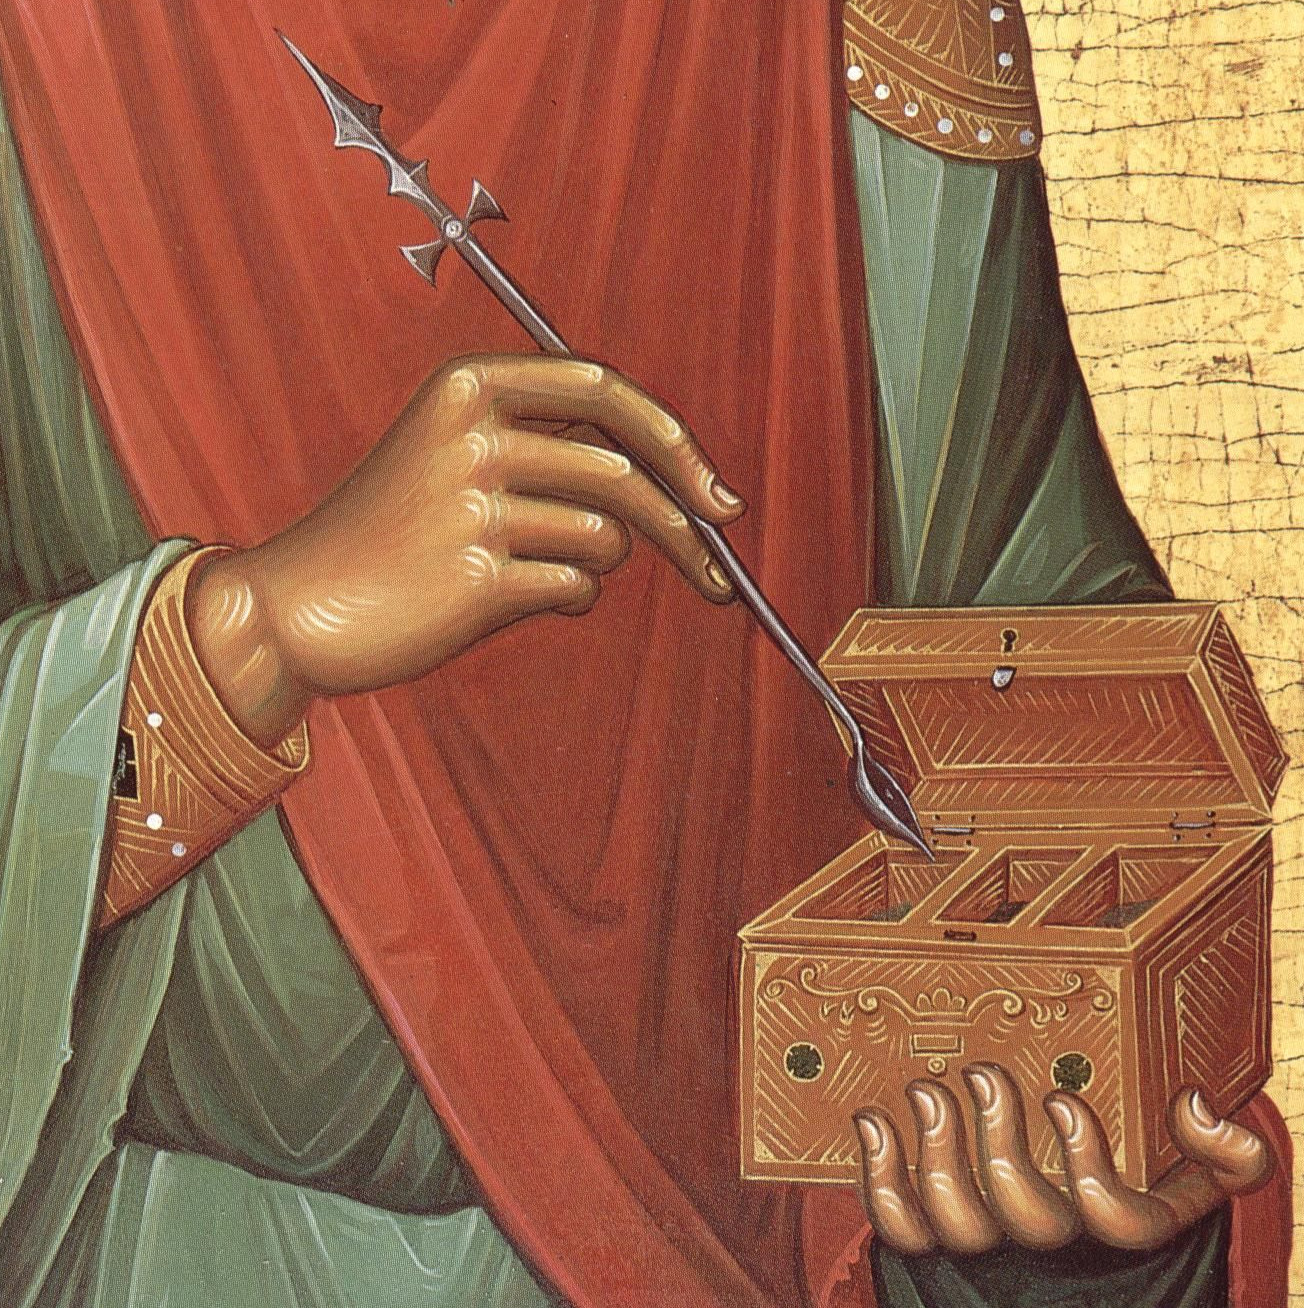 Hands of St. Panteleimon holding a cross and medicine box